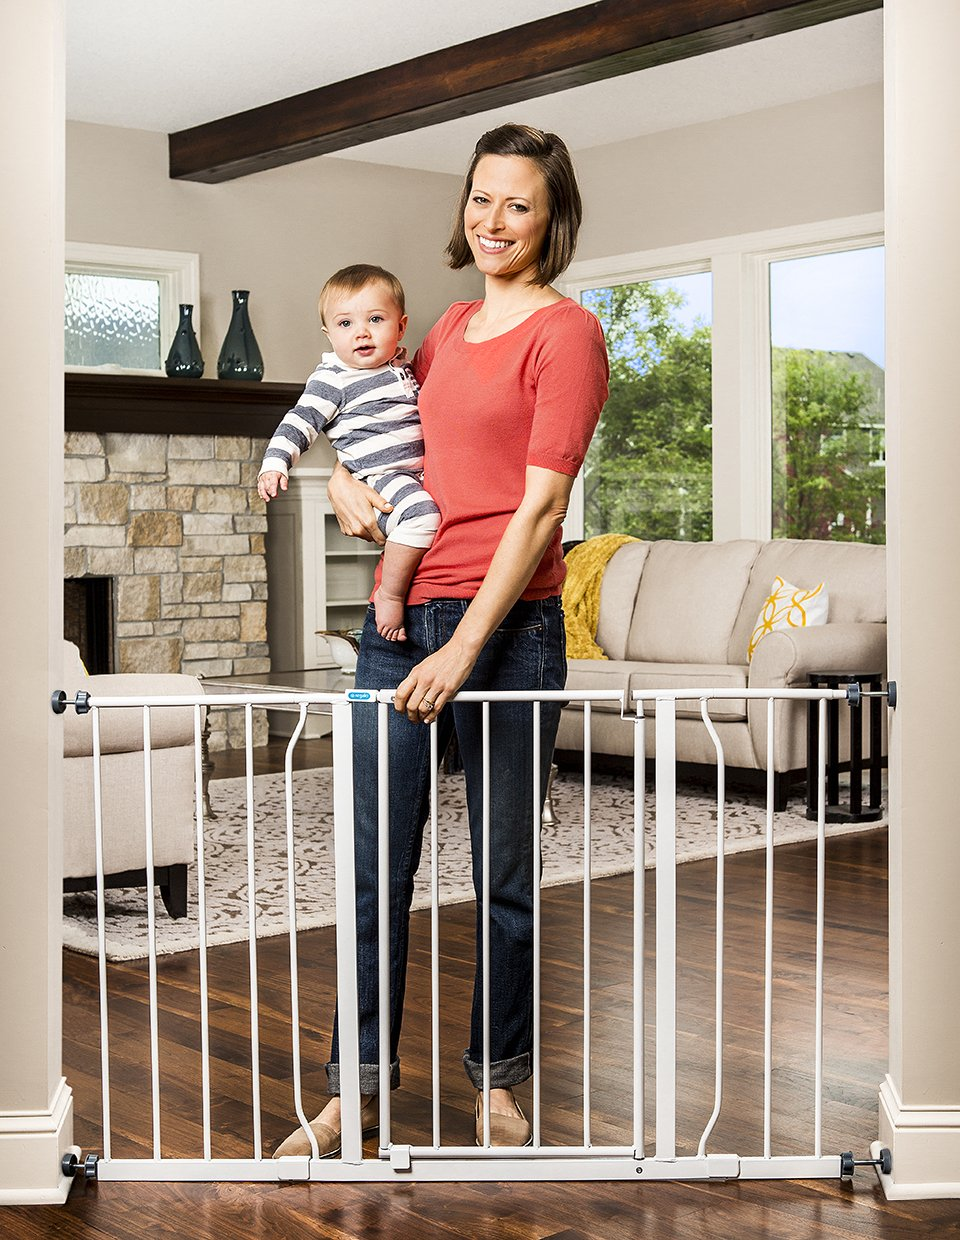 Regalo Easy Open 47-Inch Super Wide Walk Thru Baby Gate, Bonus Kit, Includes 4-Inch and 12-Inch Extension Kit, 4 Pack Pressure Mount Kit and 4 Wall Cups and Mounting Kit by Regalo